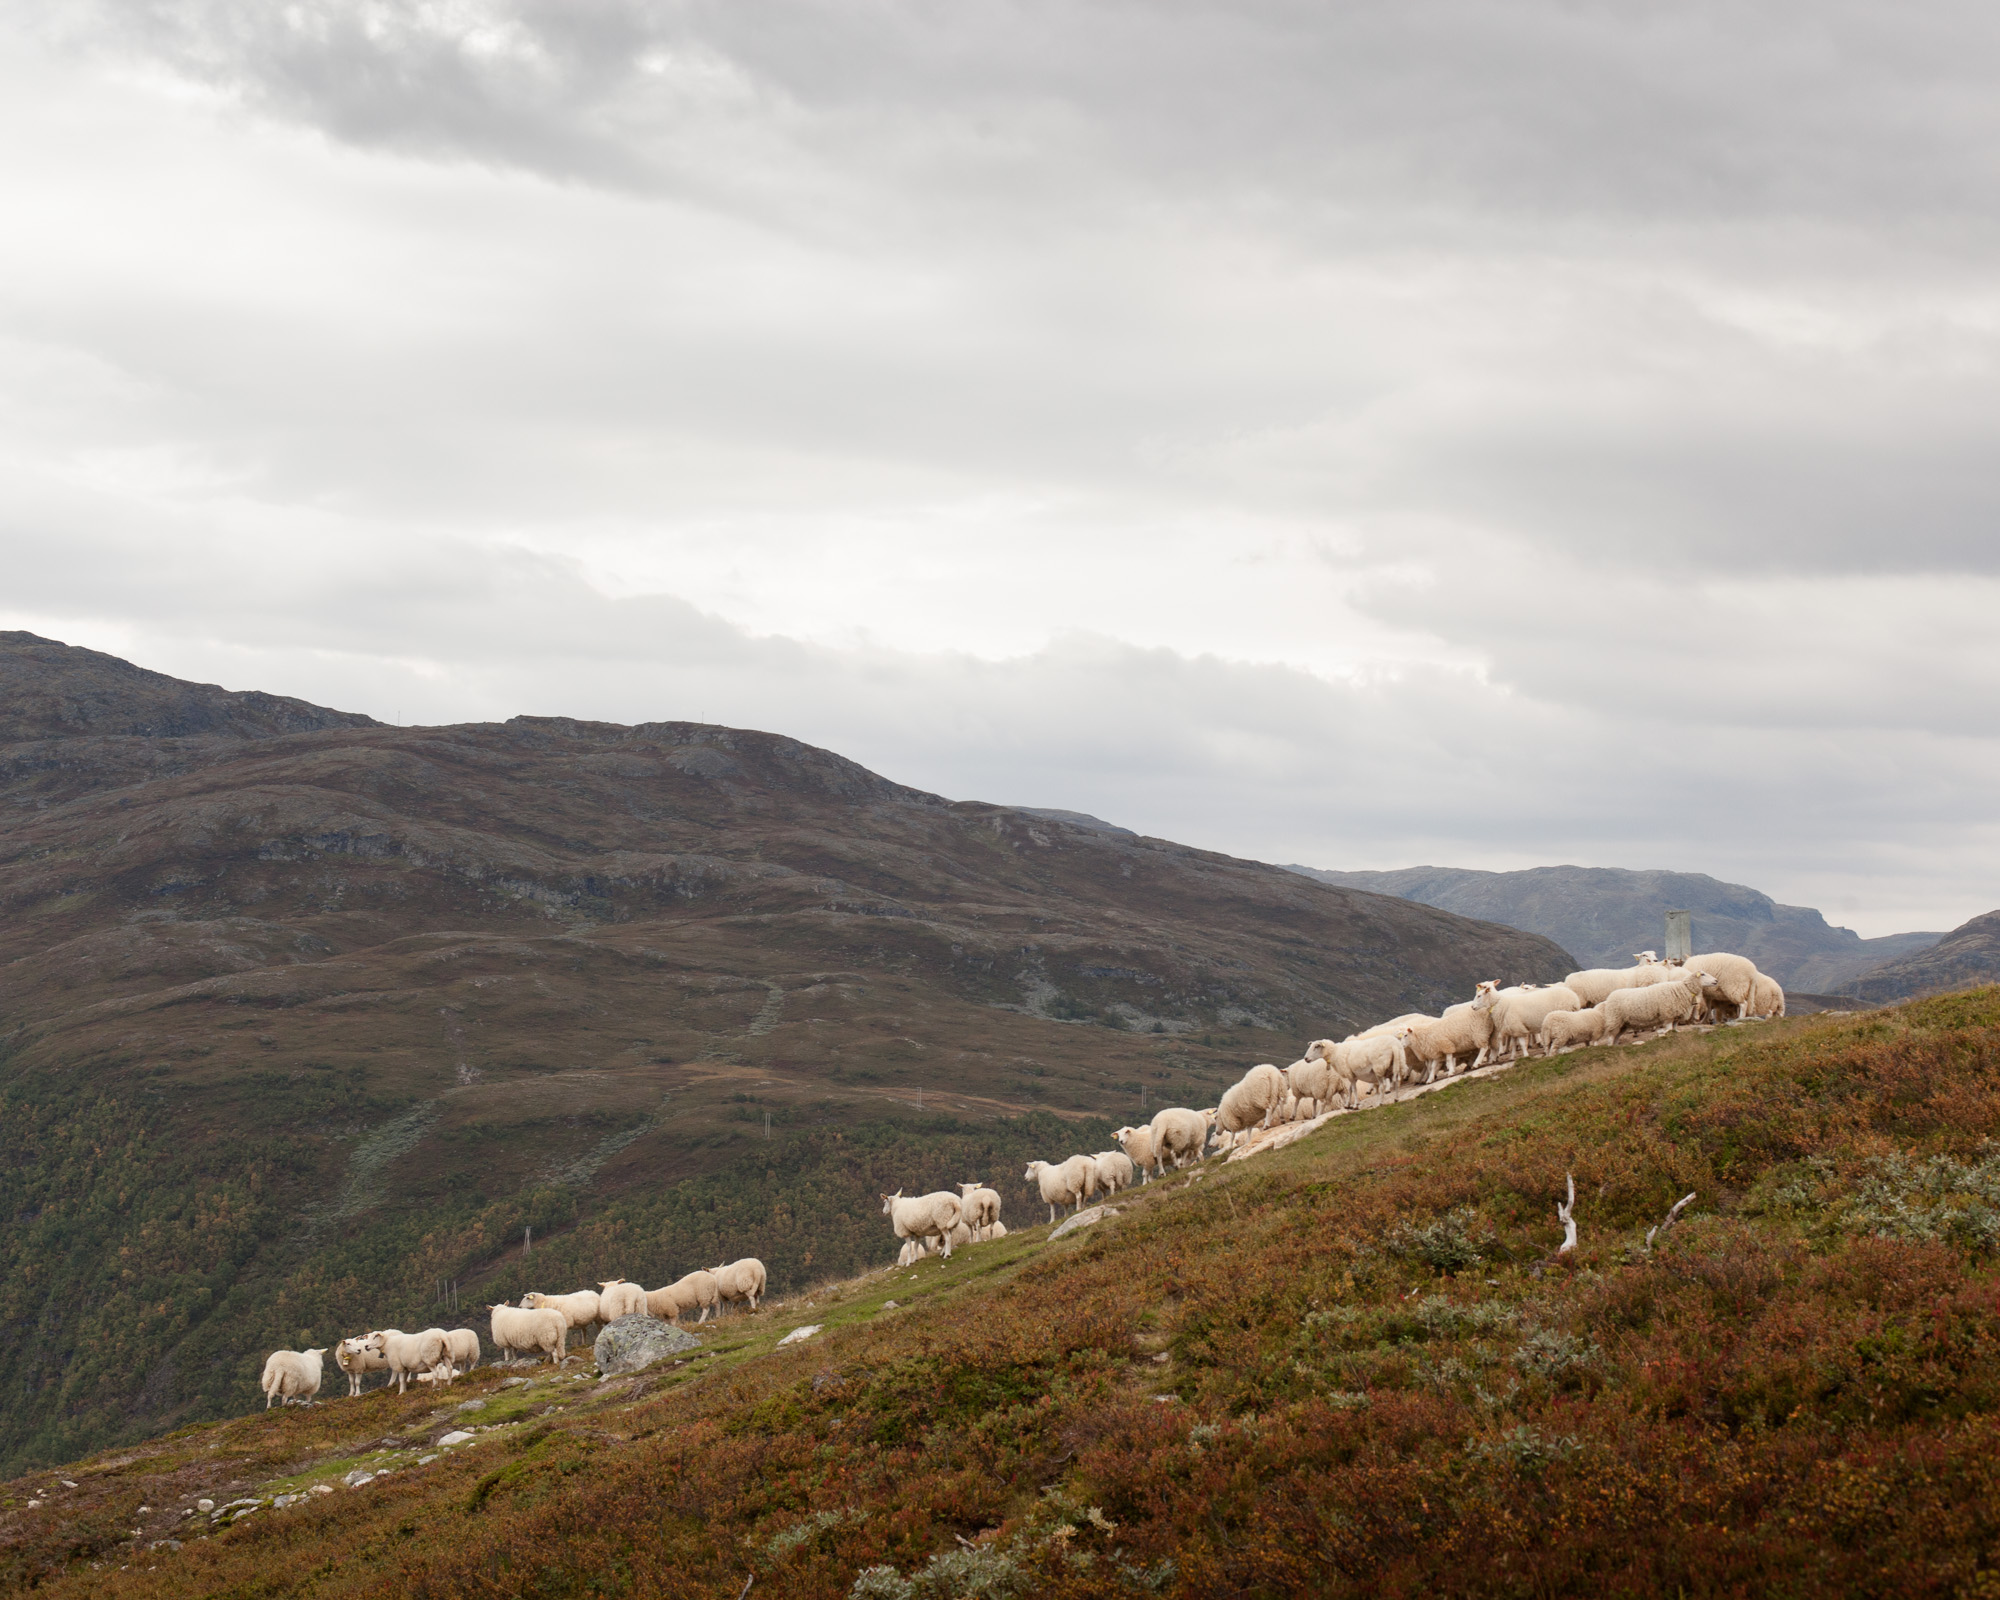 Of the 900 sheep sent to the mountain last spring, 270 did not return.